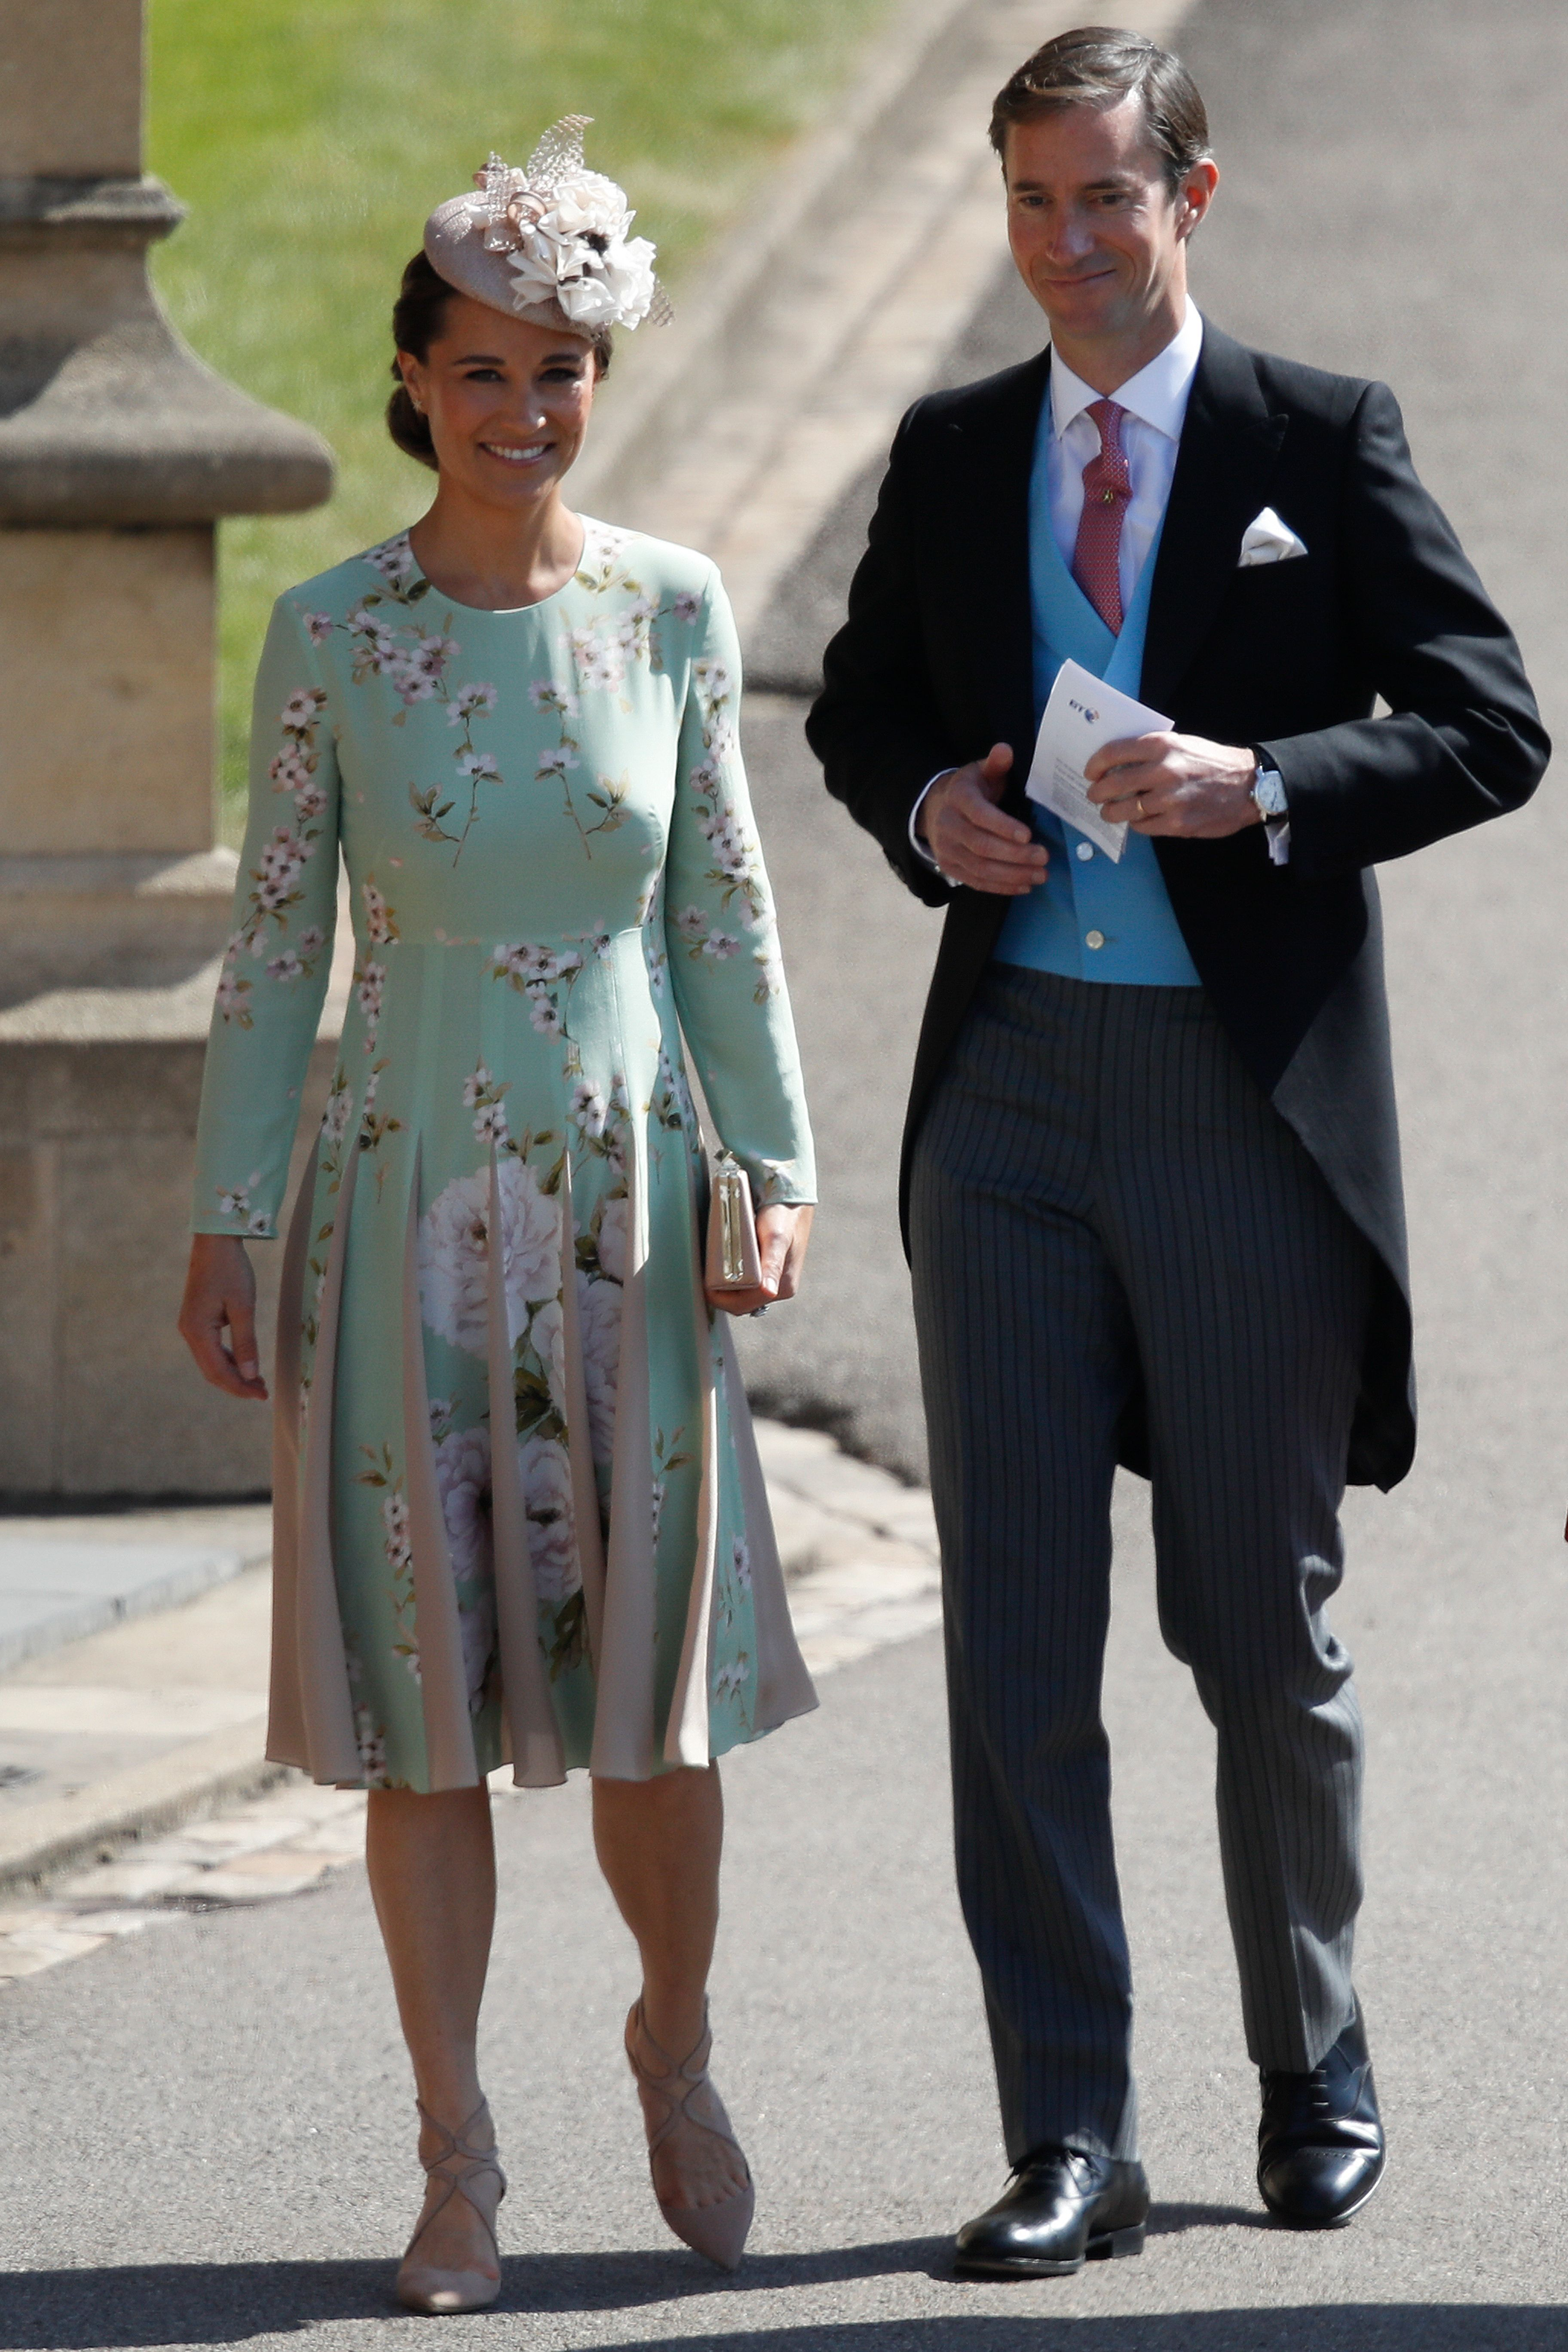 Kate Middleton's sister, who is reportedly pregnant , arrives in a mint green floral dress and nude sandals. Her husband James Spencer wears a morning suit.